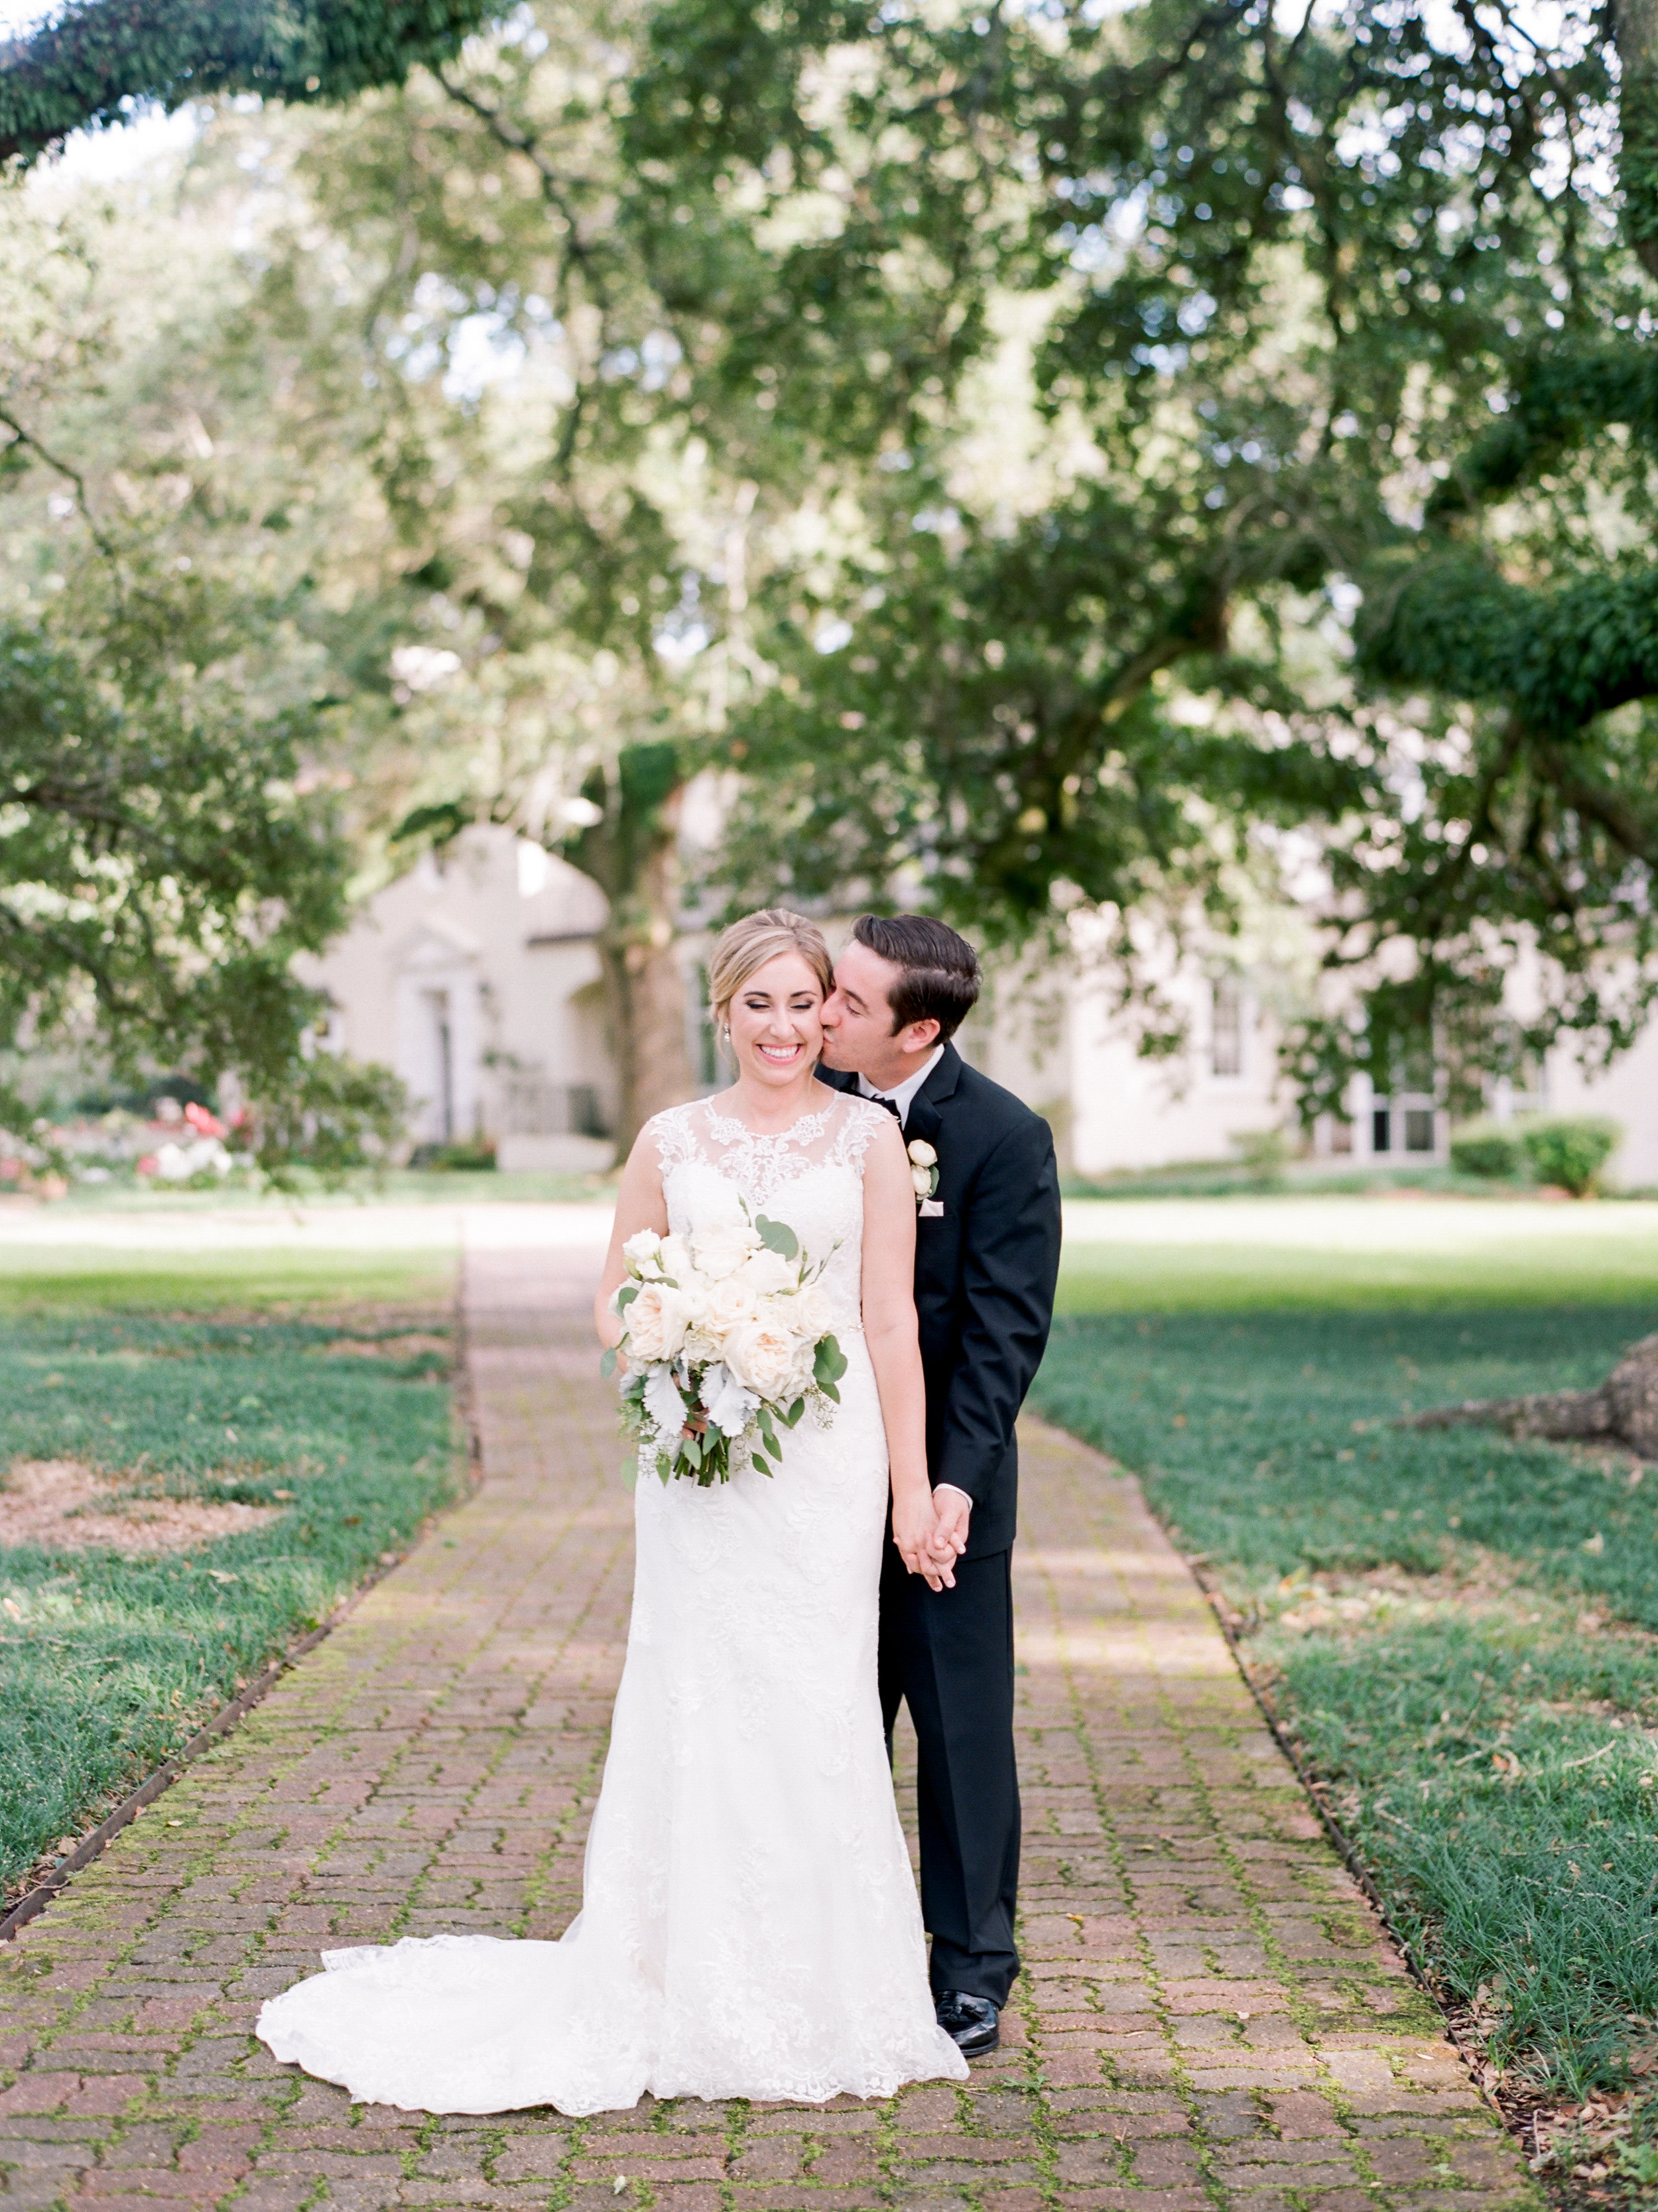 Southern Fete, Southern Wedding, Bride and Groom, Special Moment, Flowers by Rodney, Sarah Beth Photography